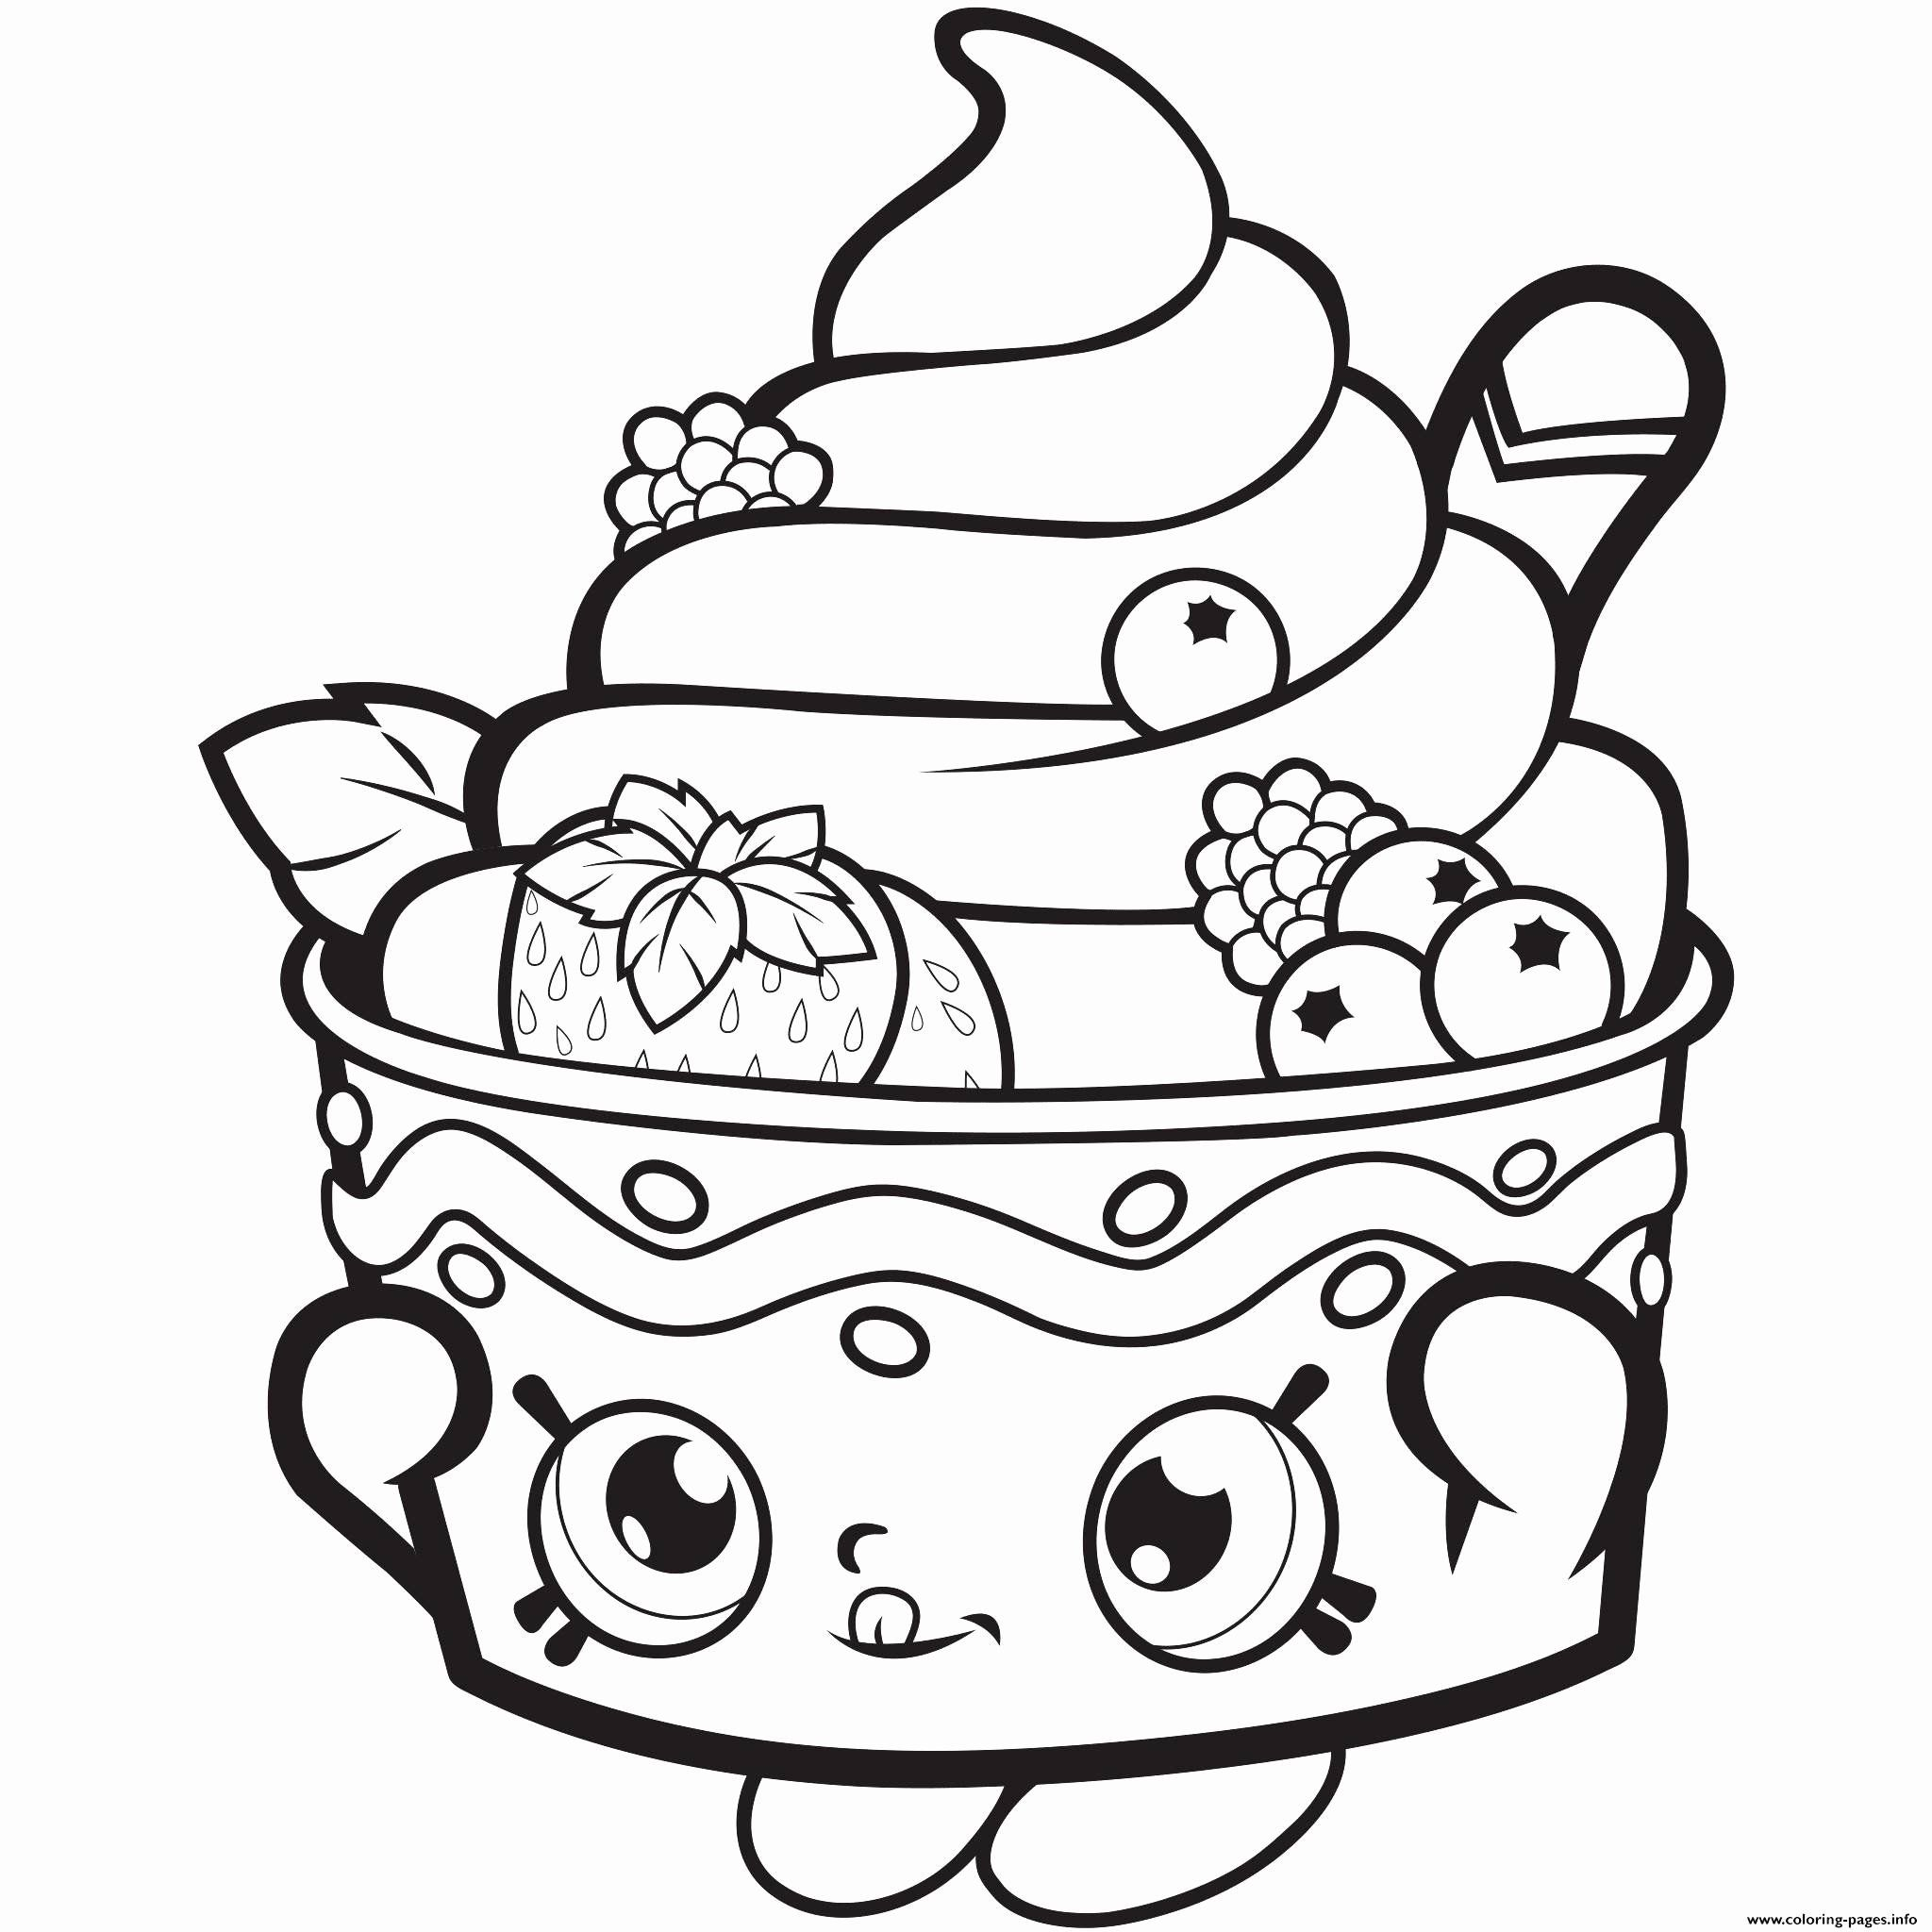 Cake Coloring Pages For Adults Best Of Shopkin Coloring Page Turtle Coloring Pages Free Coloring Pages Emoji Coloring Pages